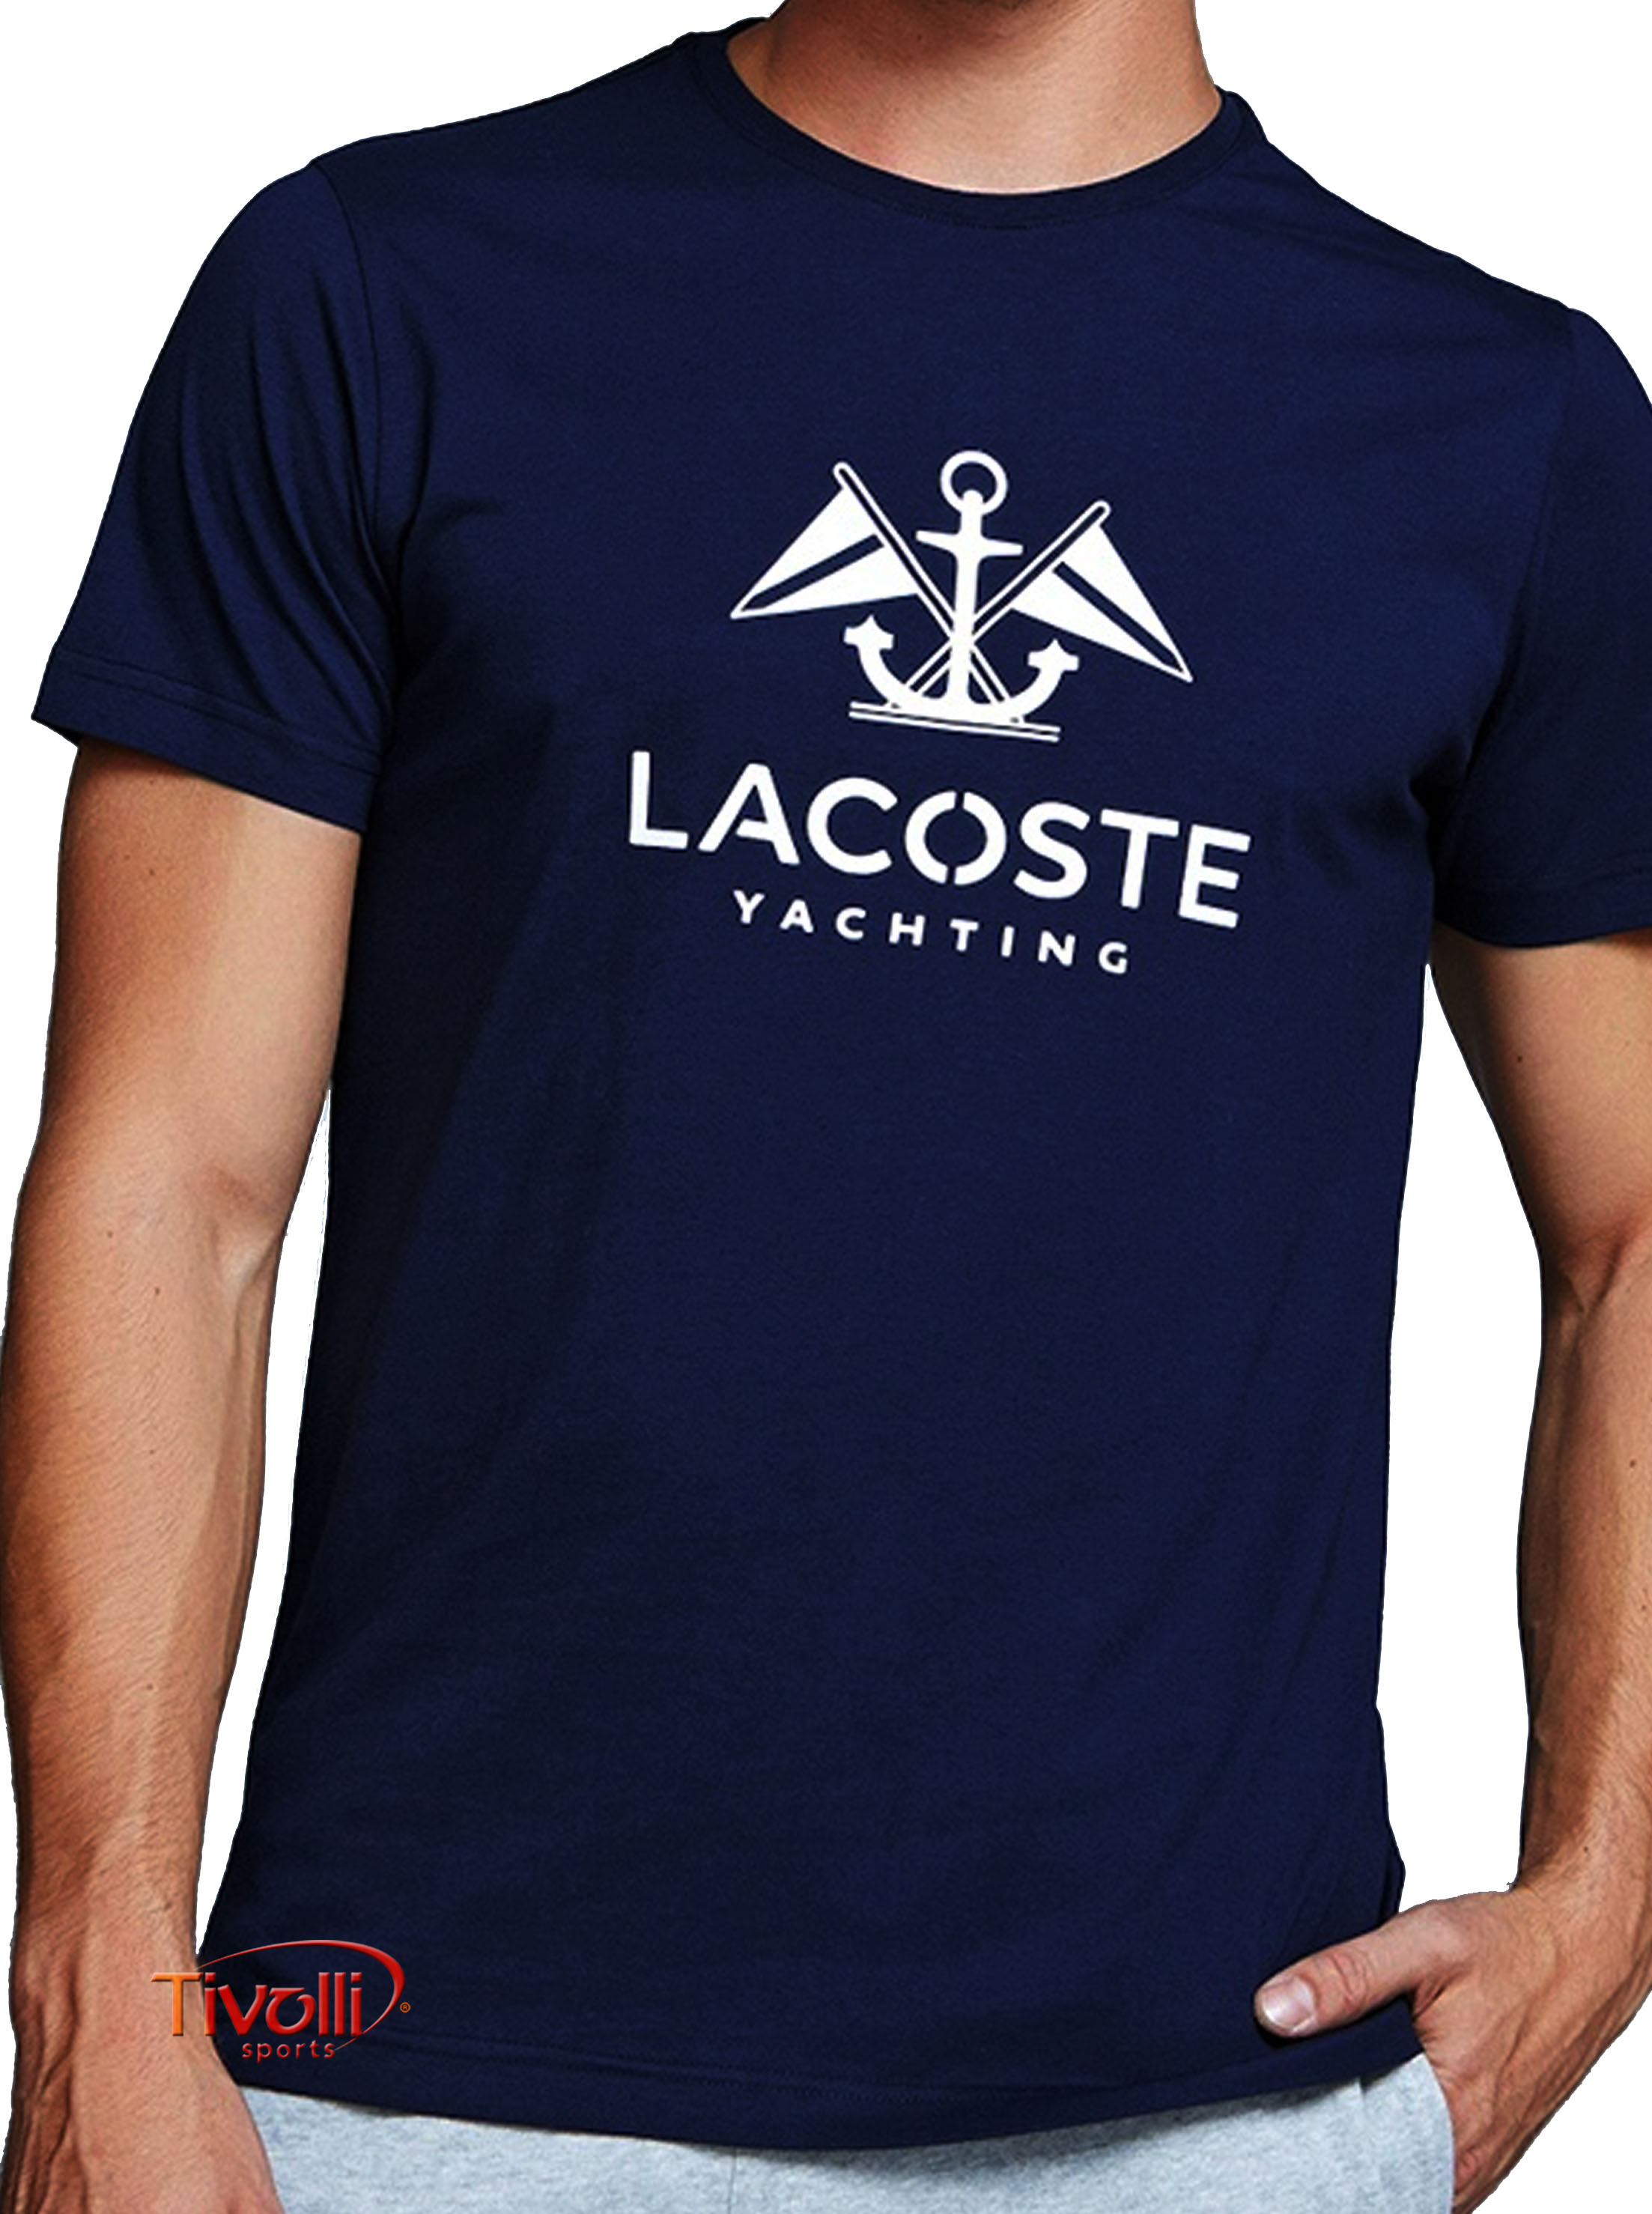 Camiseta Lacoste Yachting